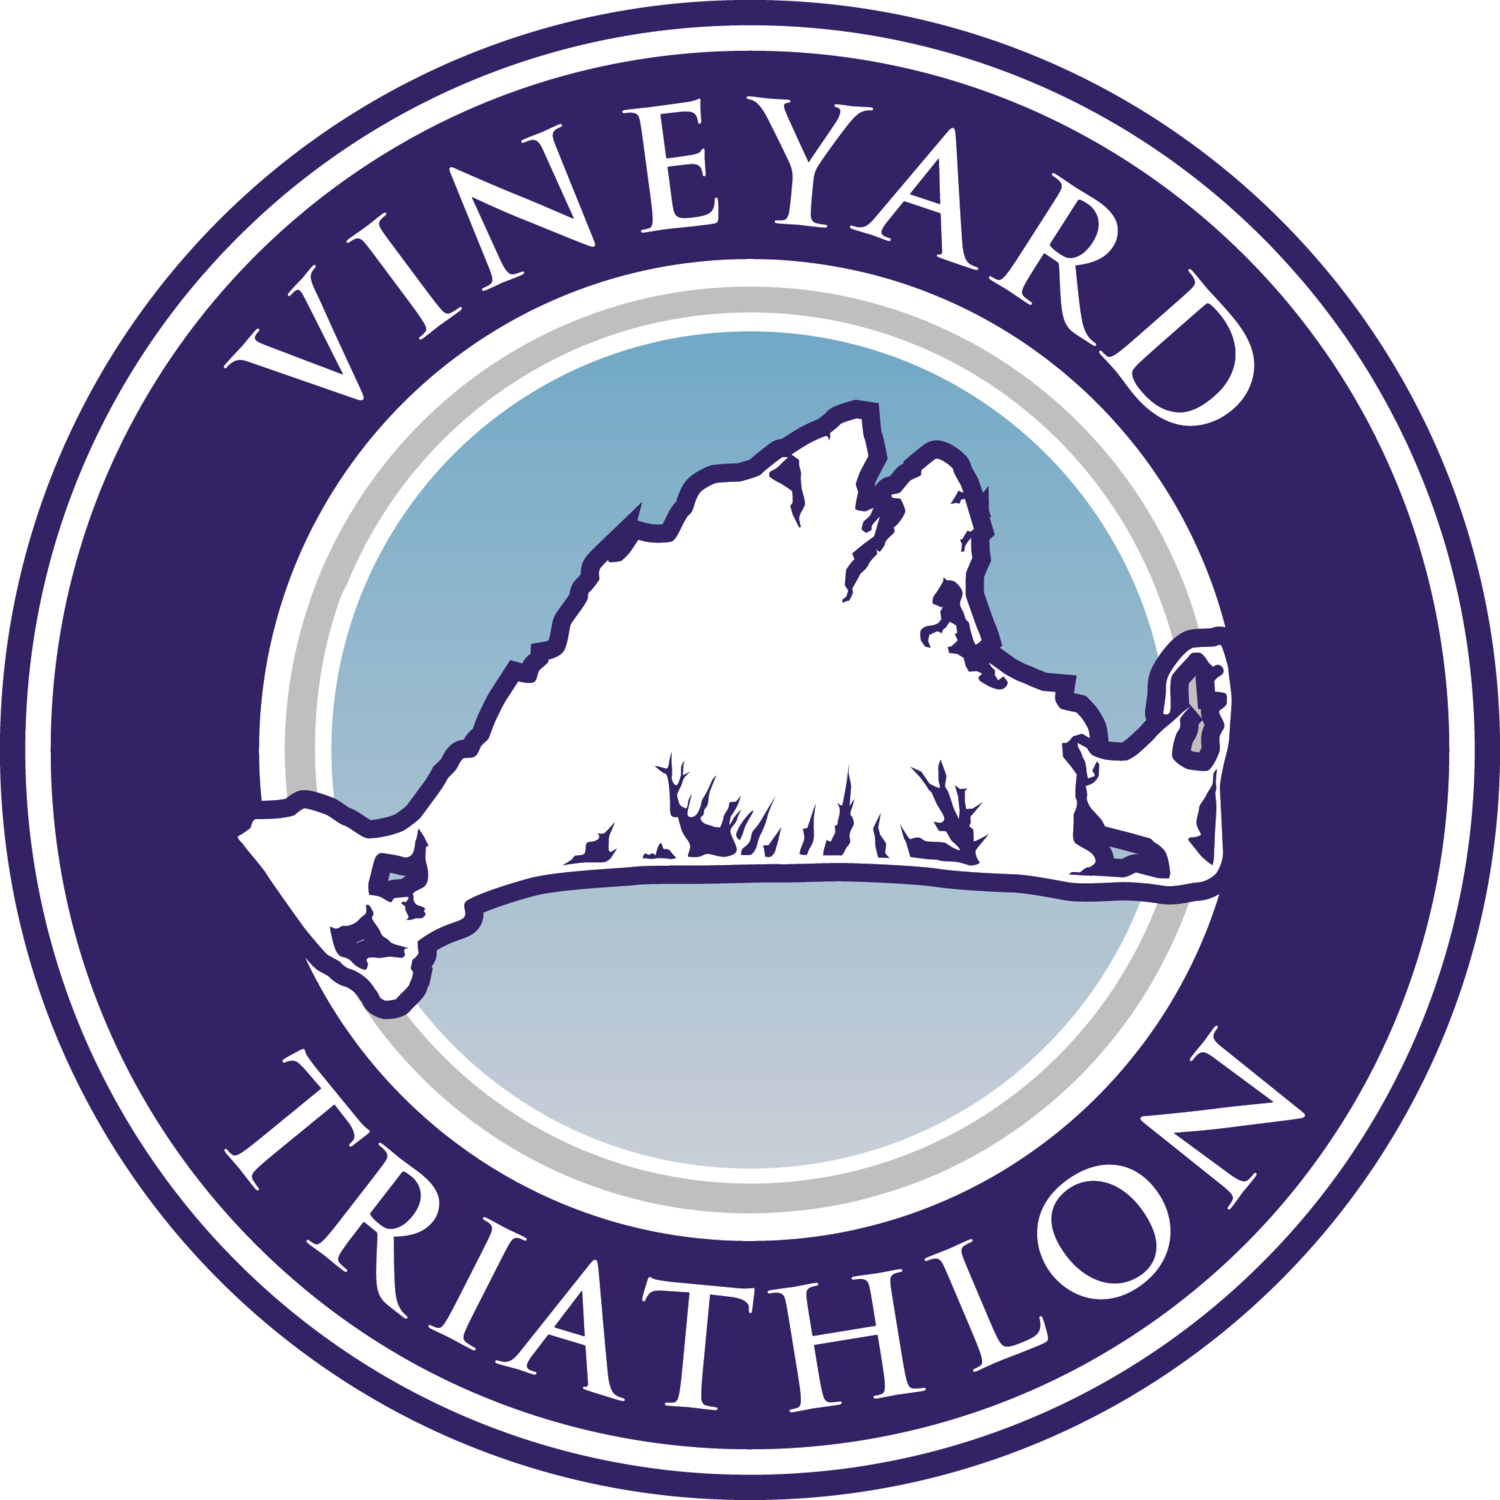 Vineyard Triathlon